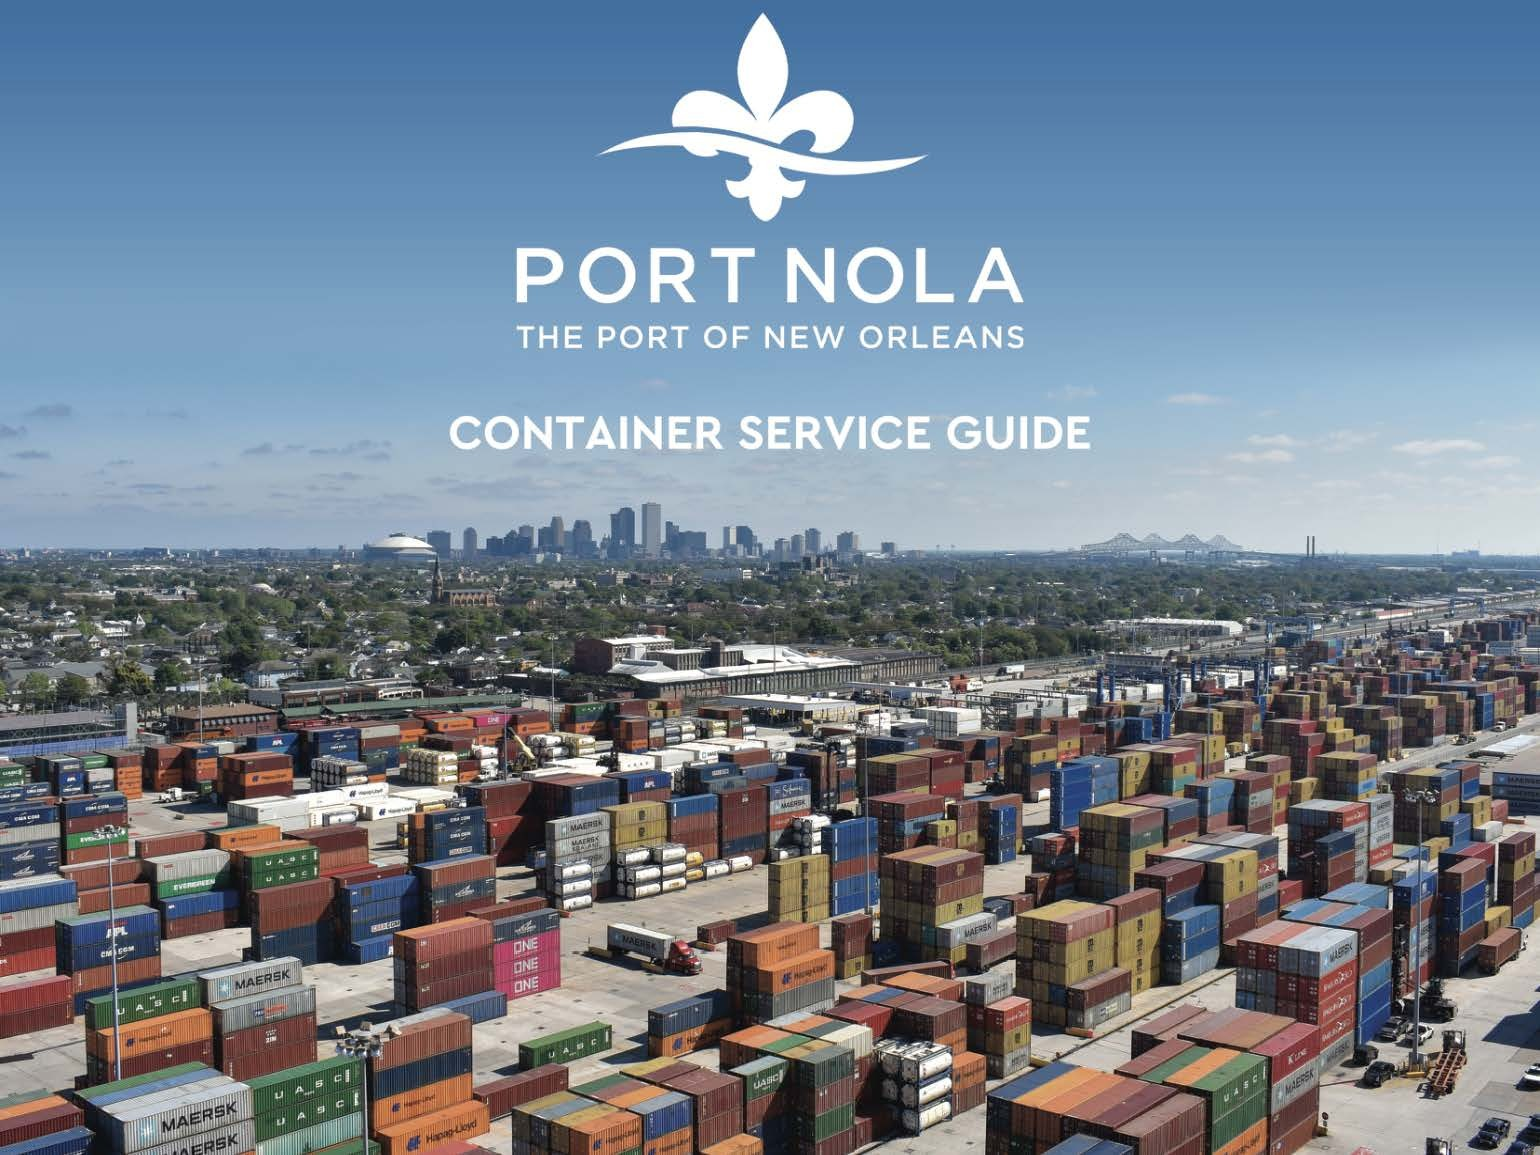 PORT NOLA 2020 CONTAINER SERVICE GUIDE Page 01